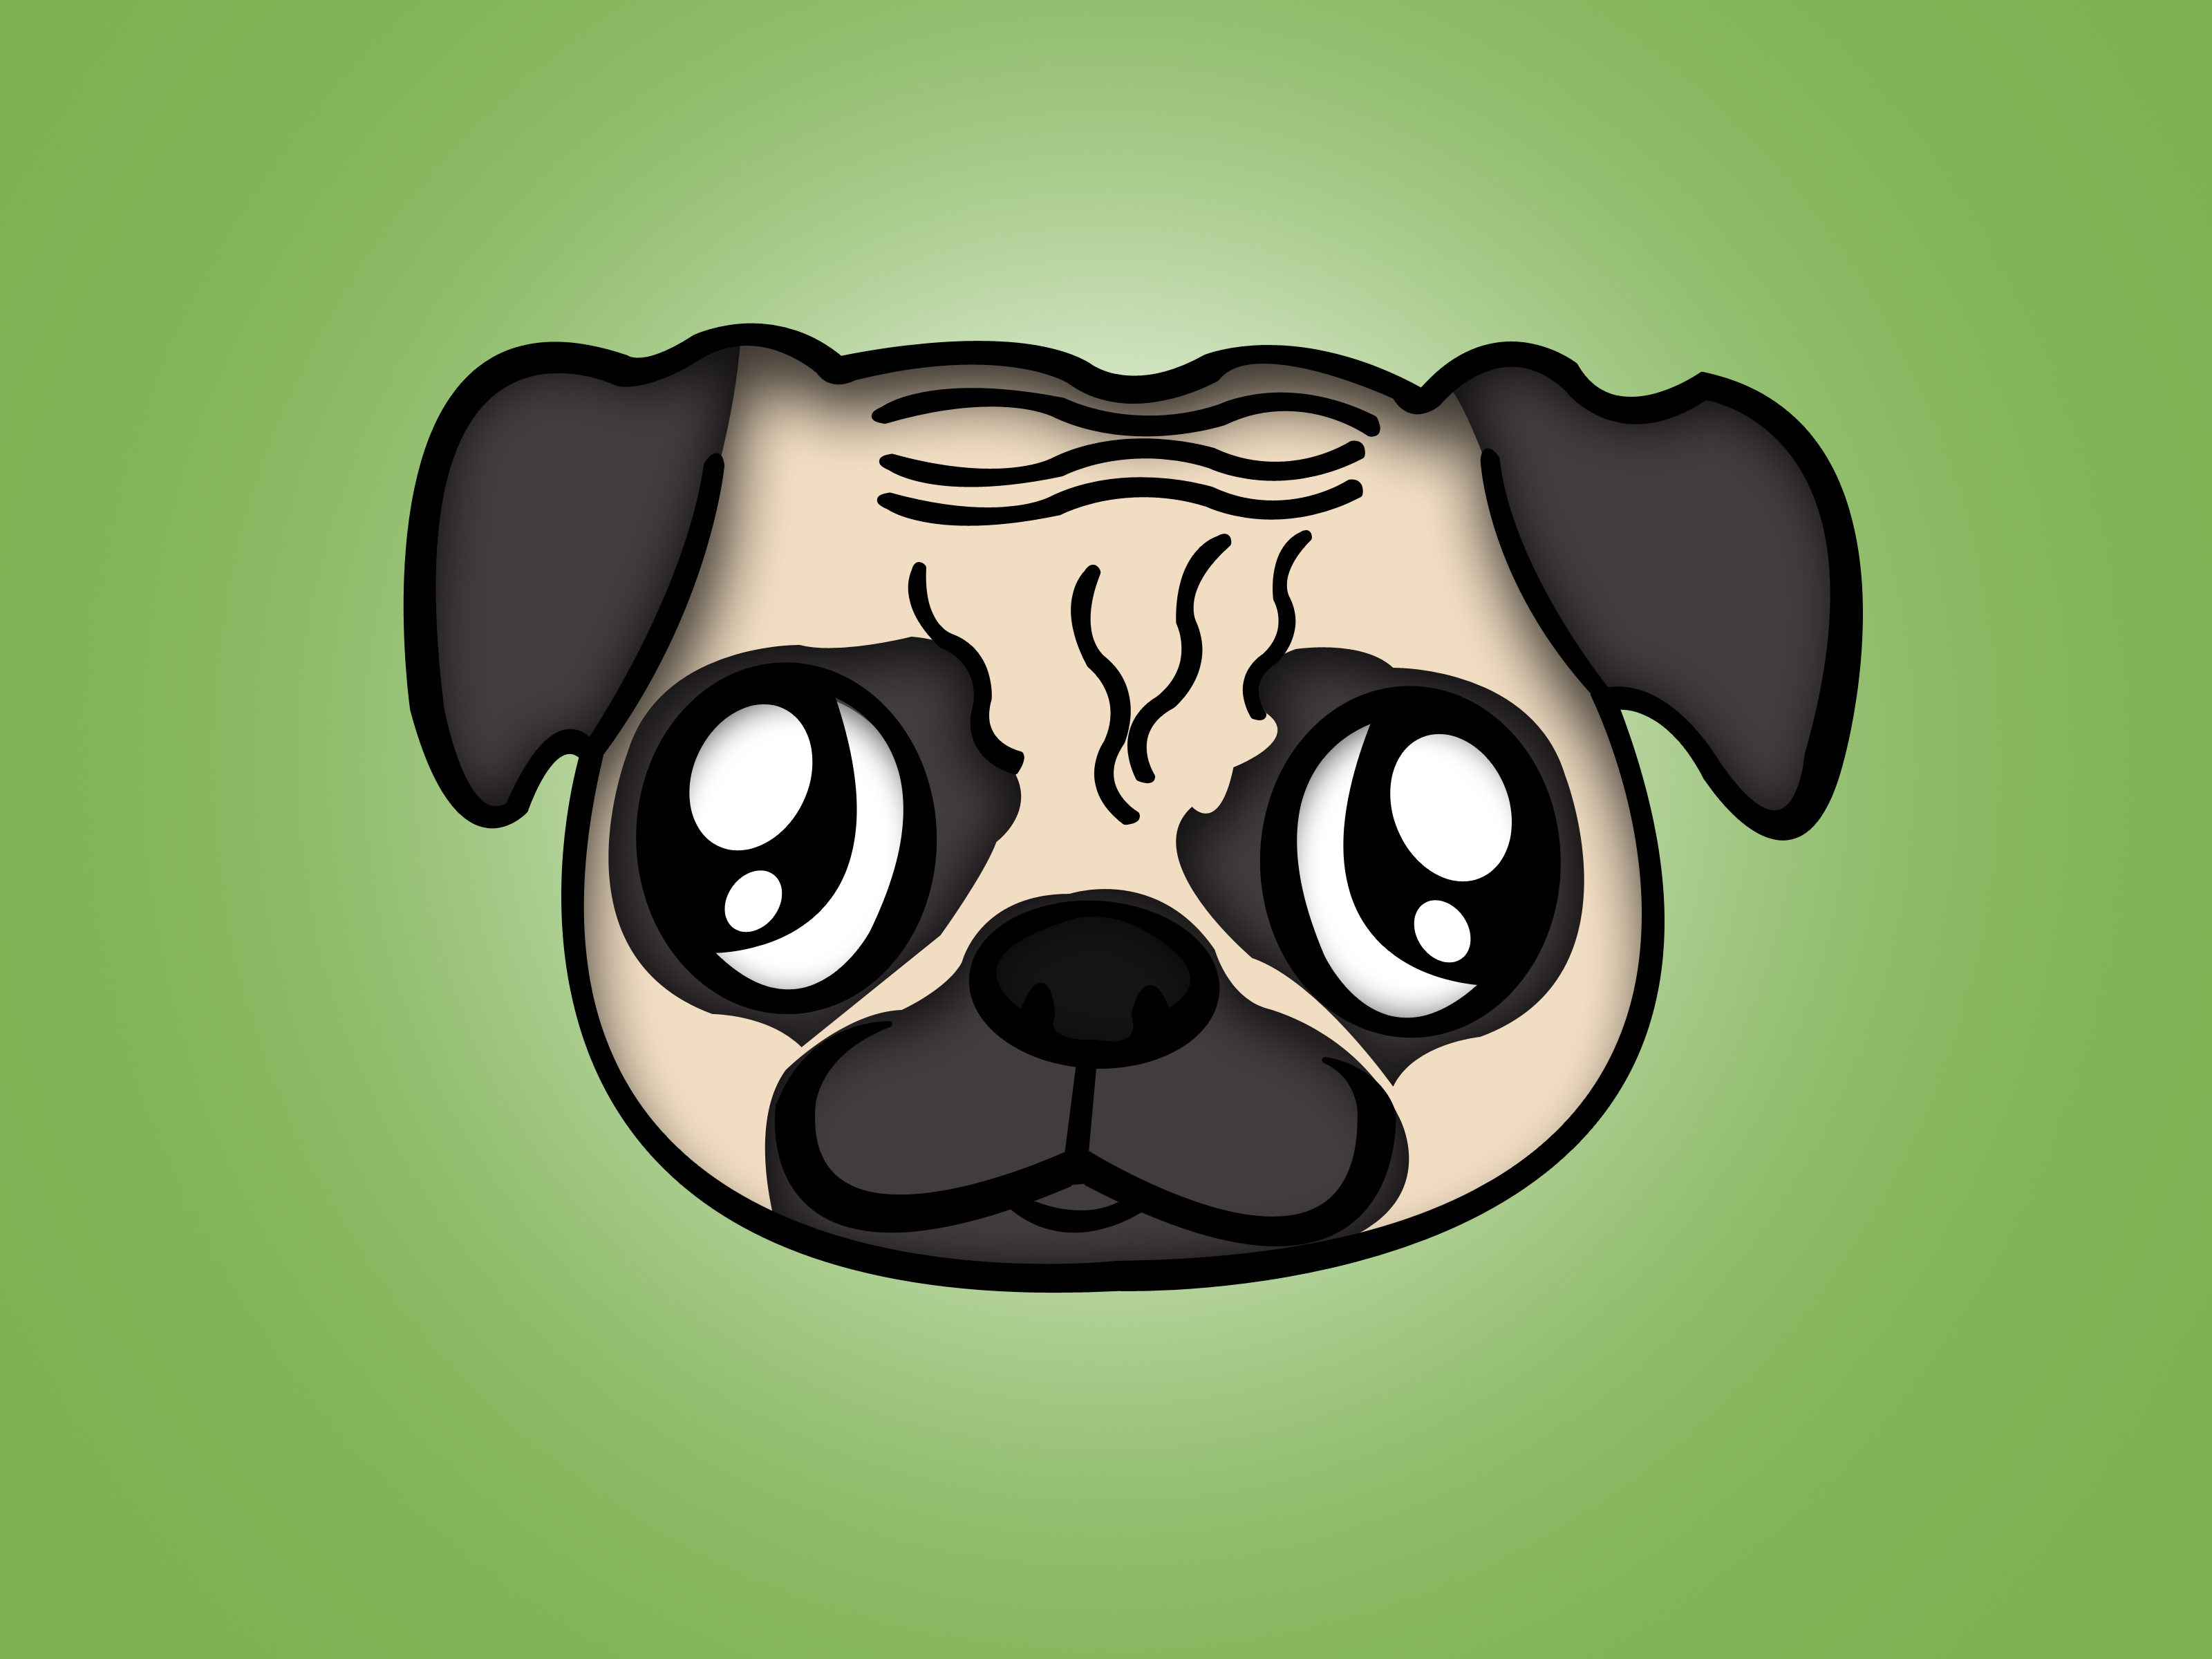 3200x2400 How To Draw A Pug 7 Steps (With Pictures)